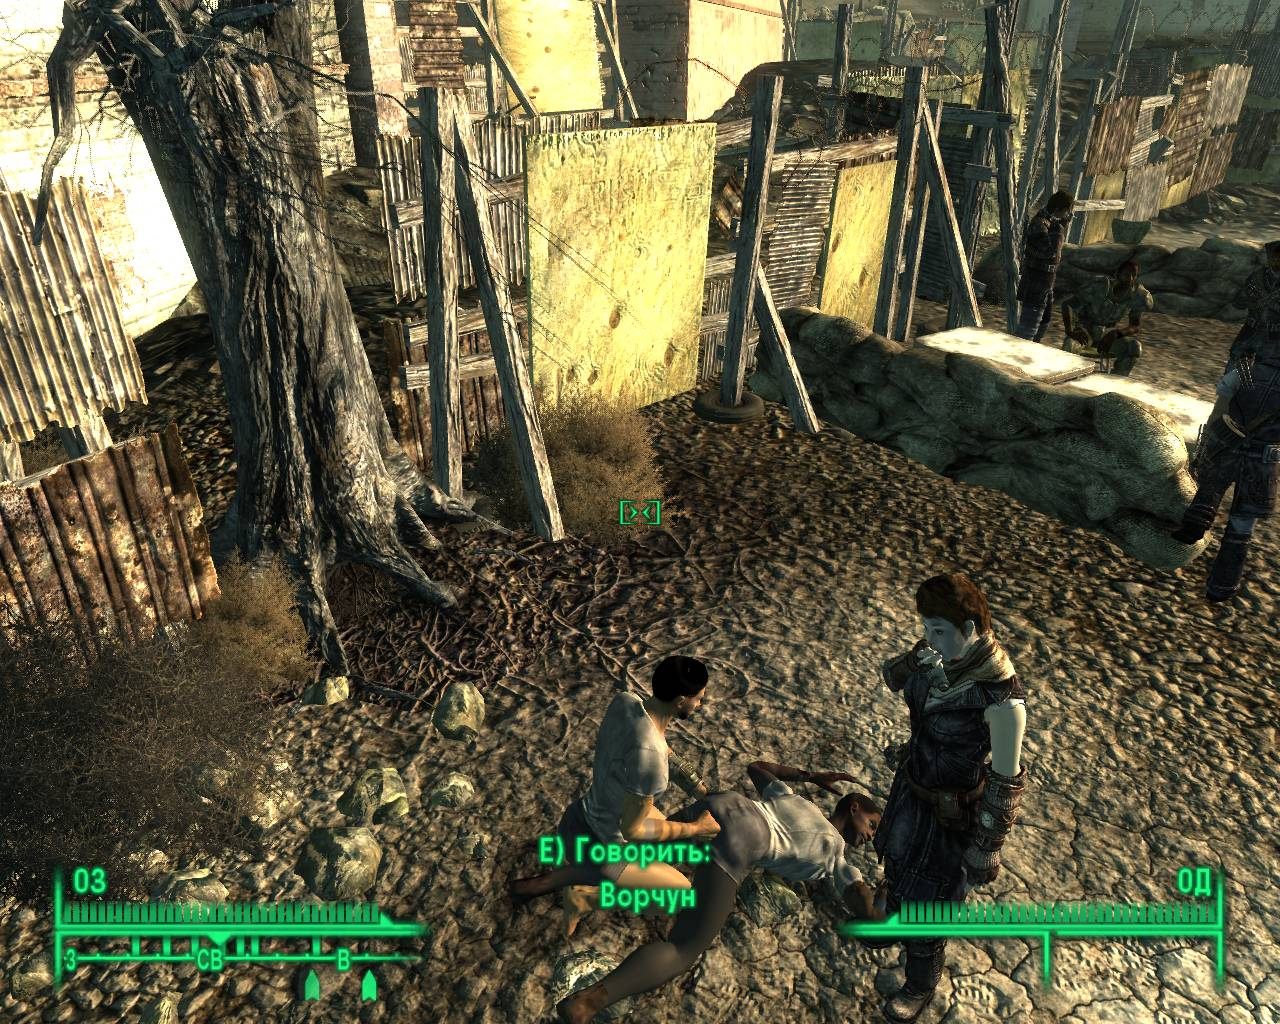 Fallout 3 prostitution adult image